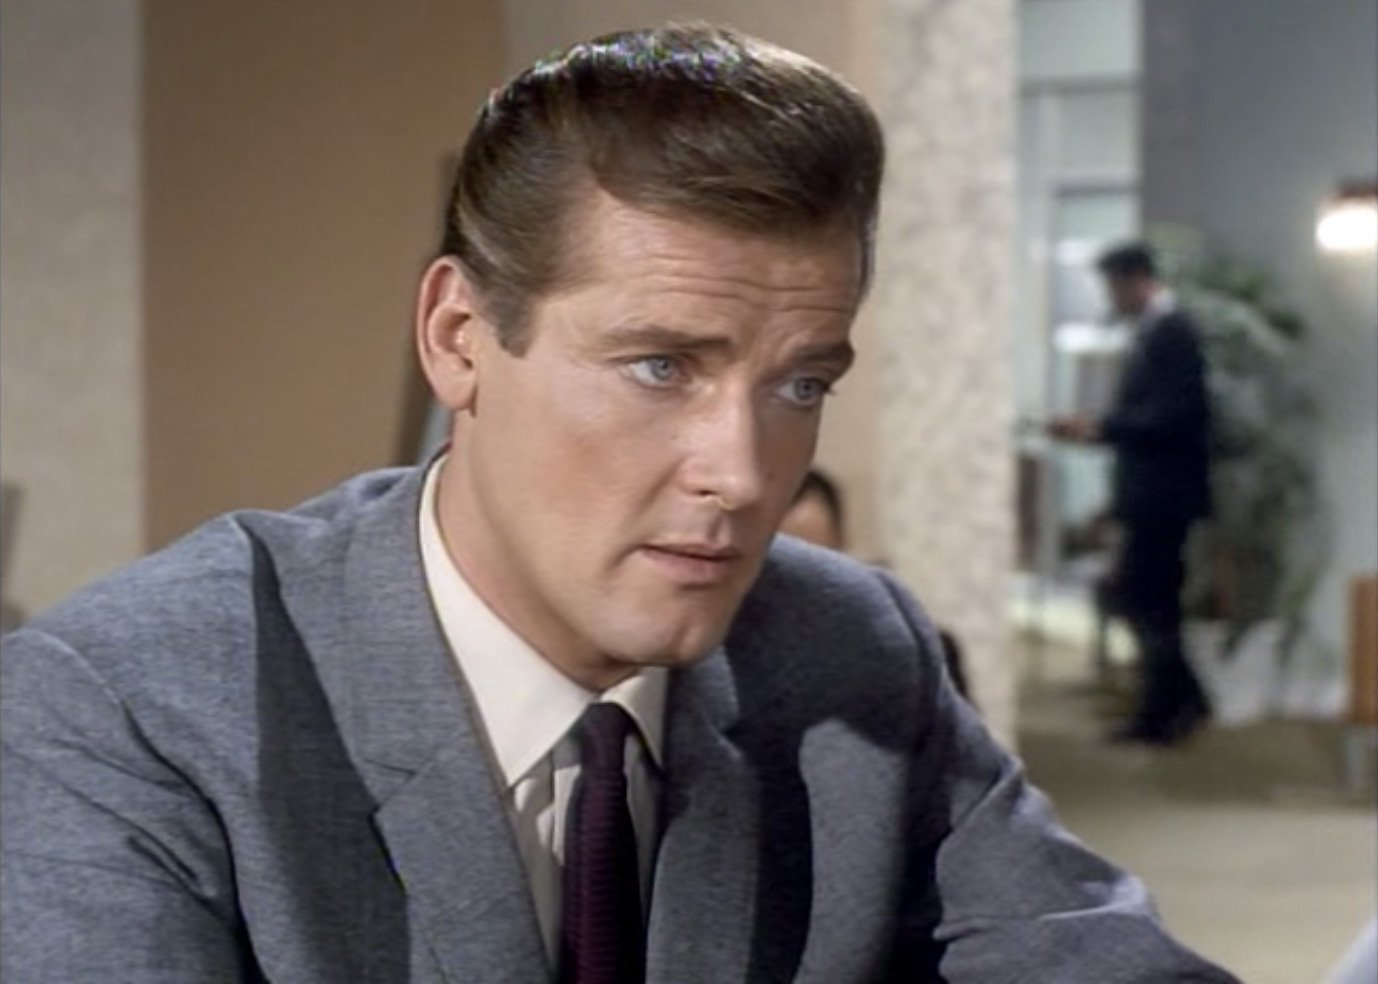 The Saint: Relevant to Skyfall? – The Suits of James Bond